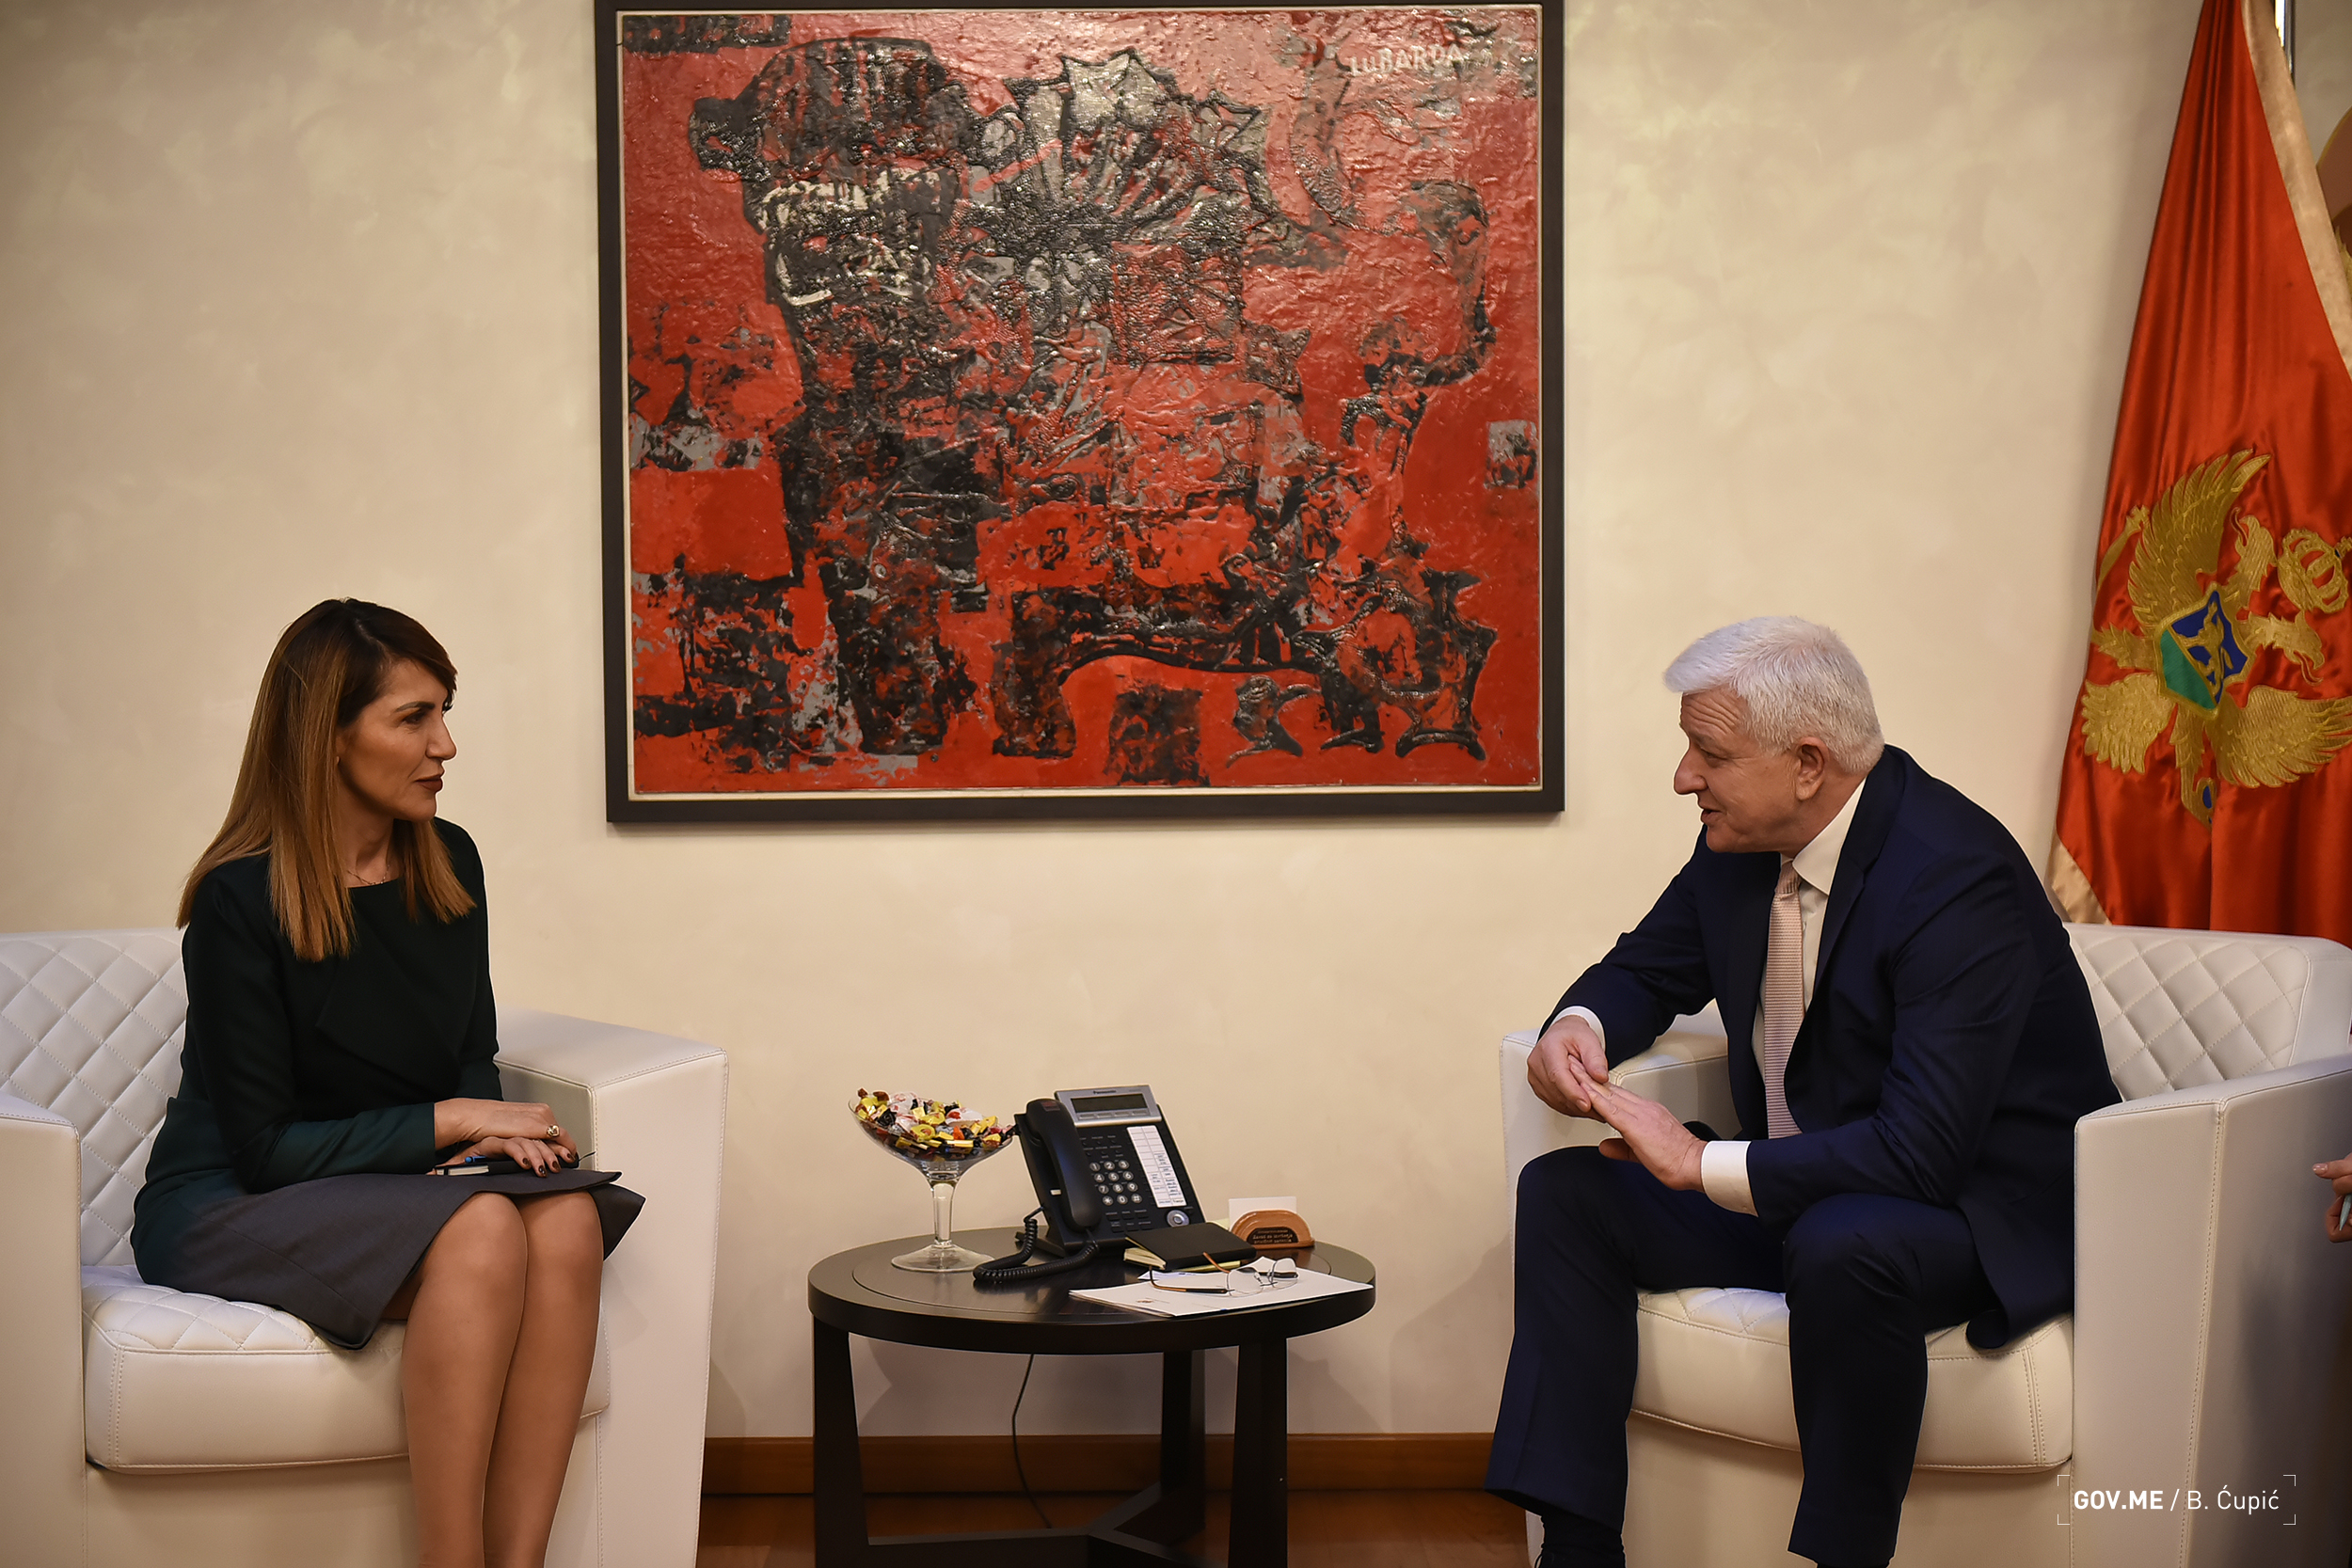 Secretary General of the Regional Cooperation Council (RCC), Majlinda Bregu with the Prime Minister of Montenegro, Duško Marković, in Podgorica on 22 February 2019 (Photo: Courtesy of the Government of Montenegro)